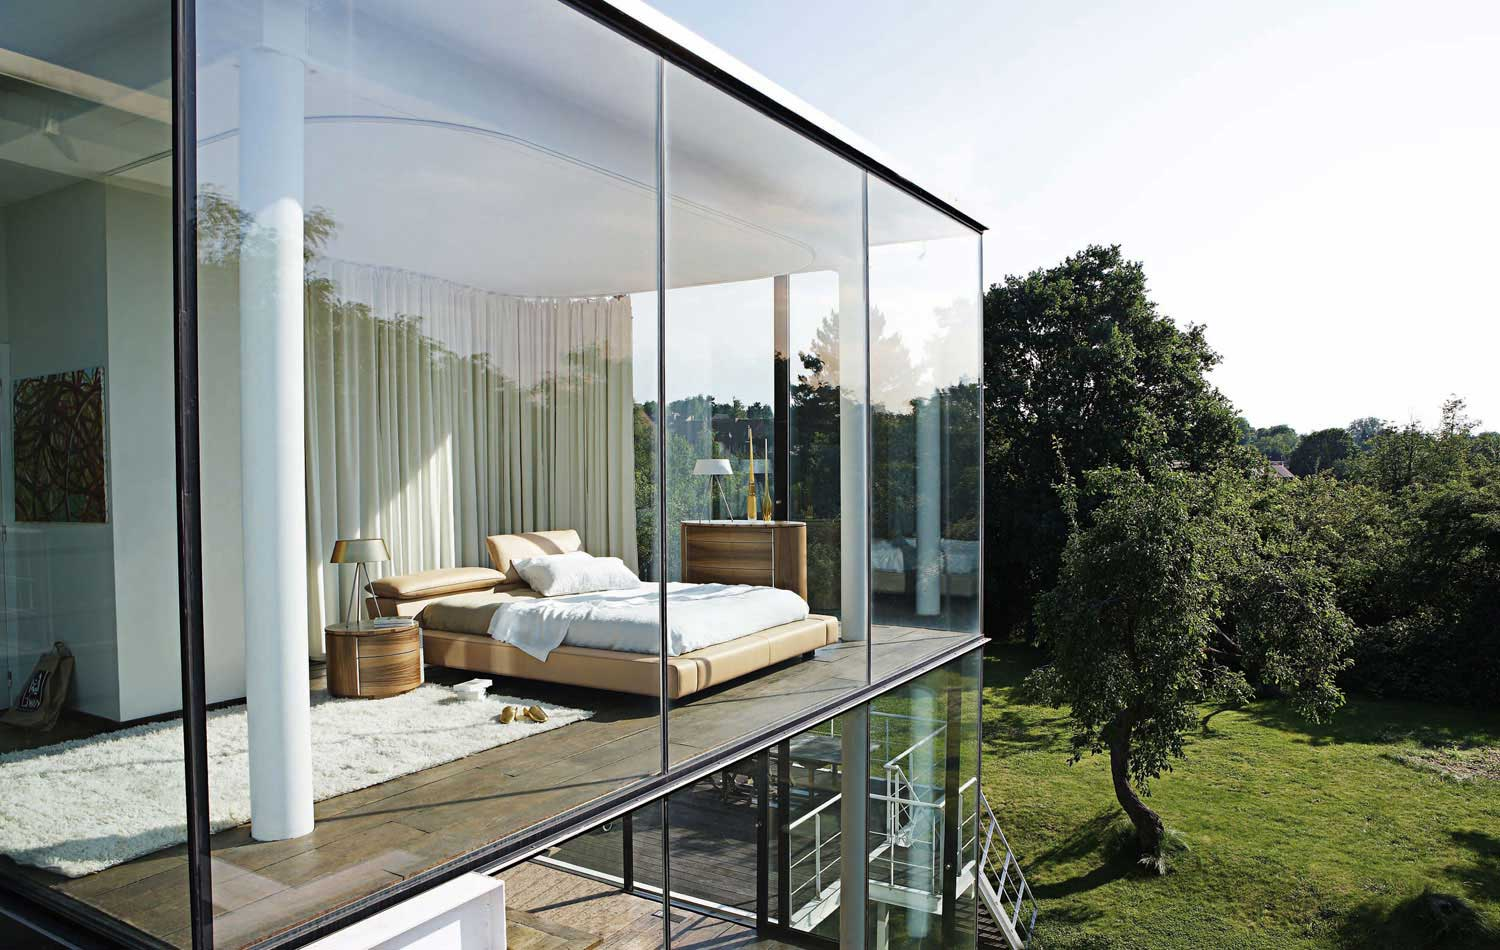 TRIPLE GLAZED MODERN PANORAMIC WINDOWS WITH A BEDROOM VIEW, FULLY GLASS